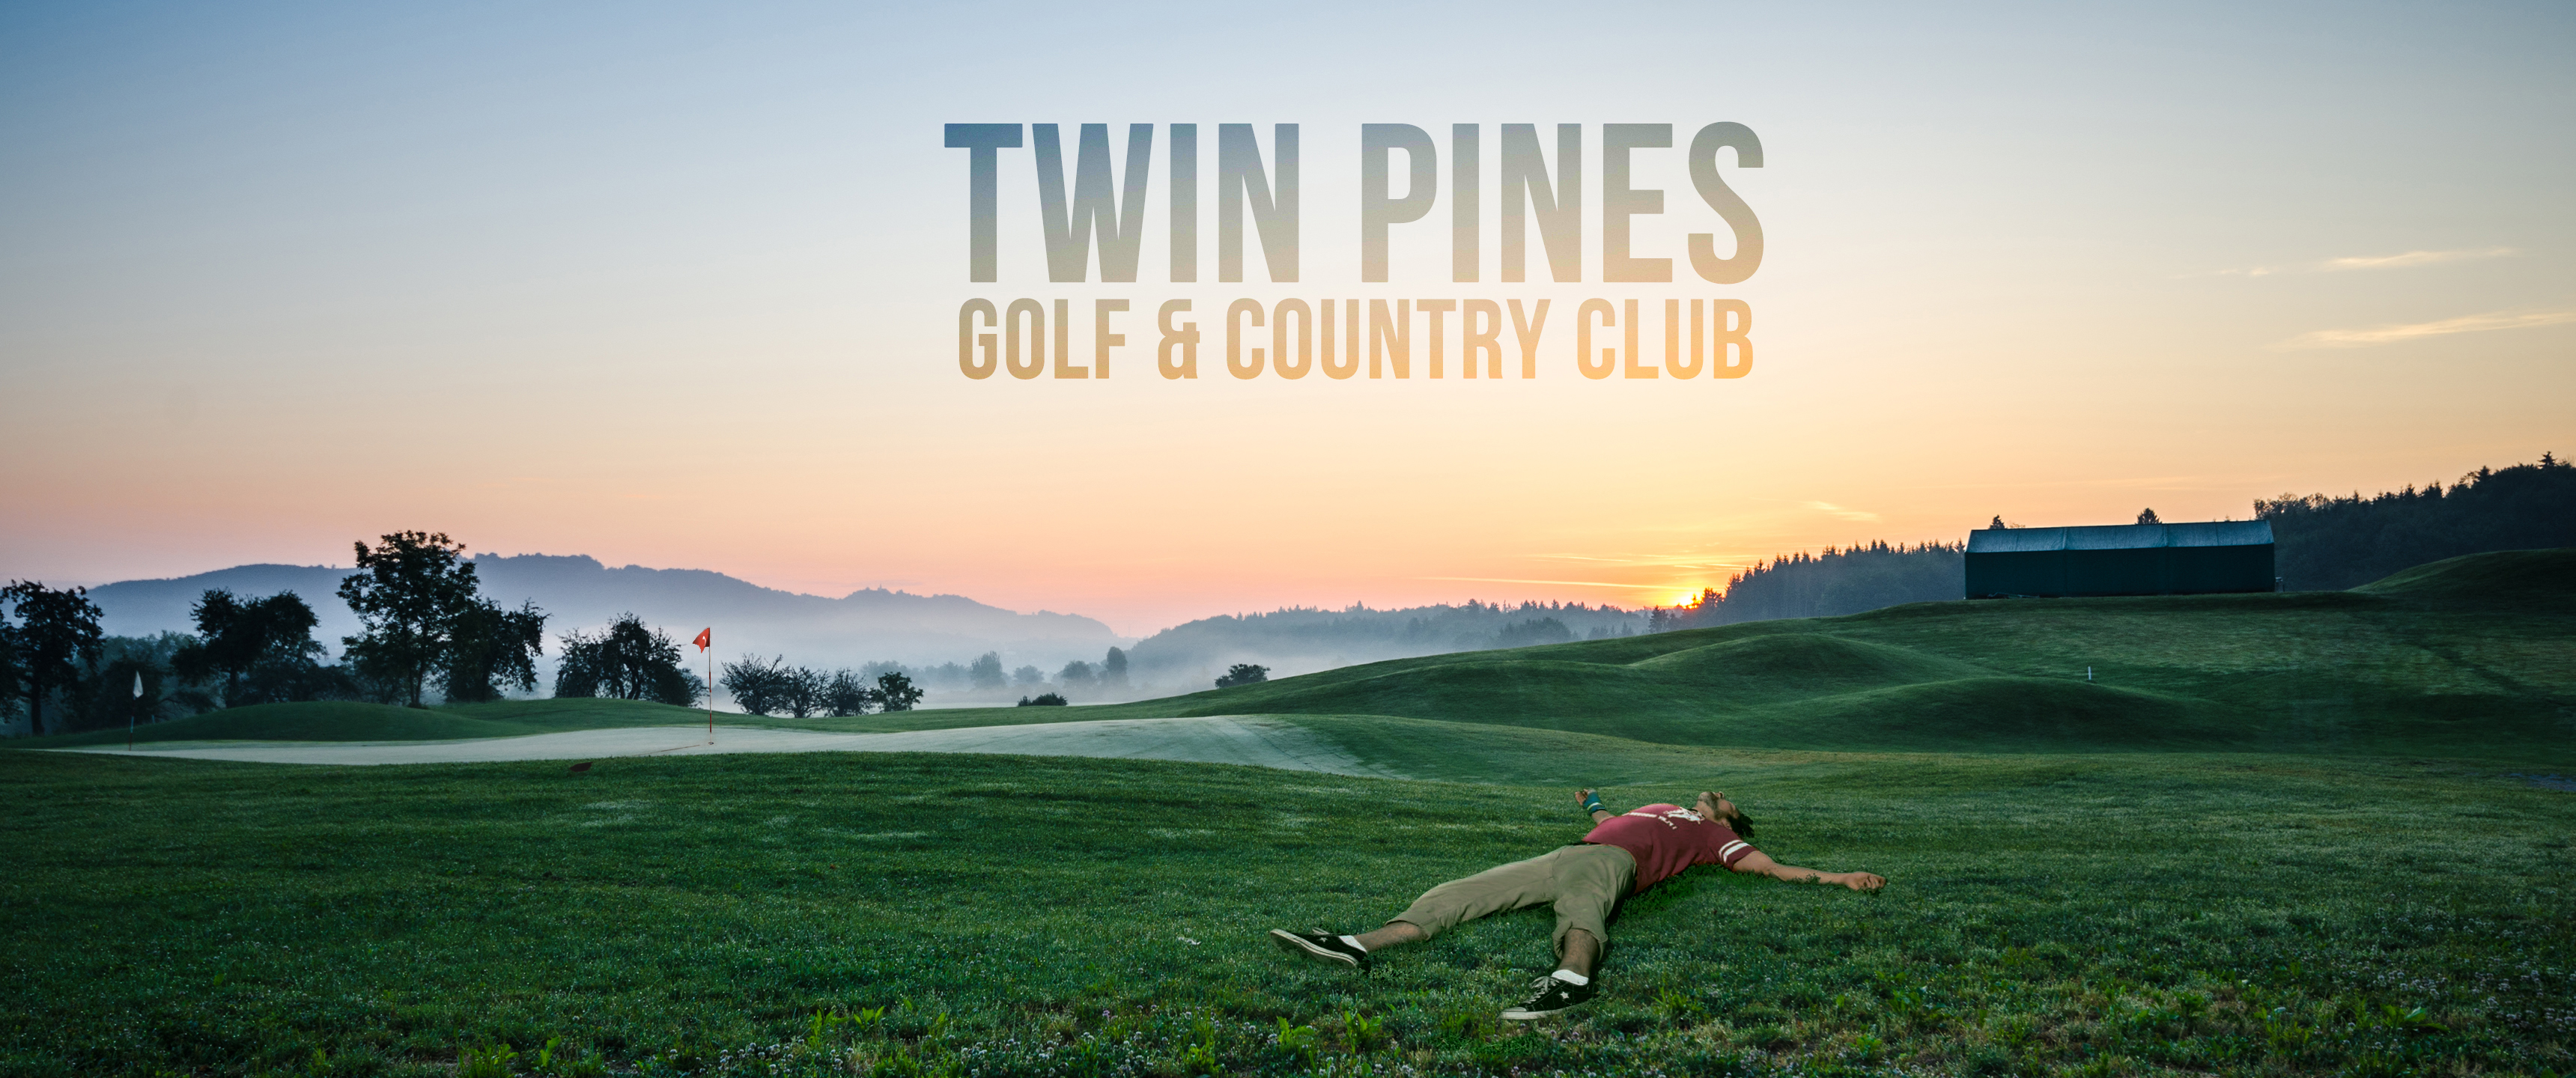 Twin pines wallpaper 2